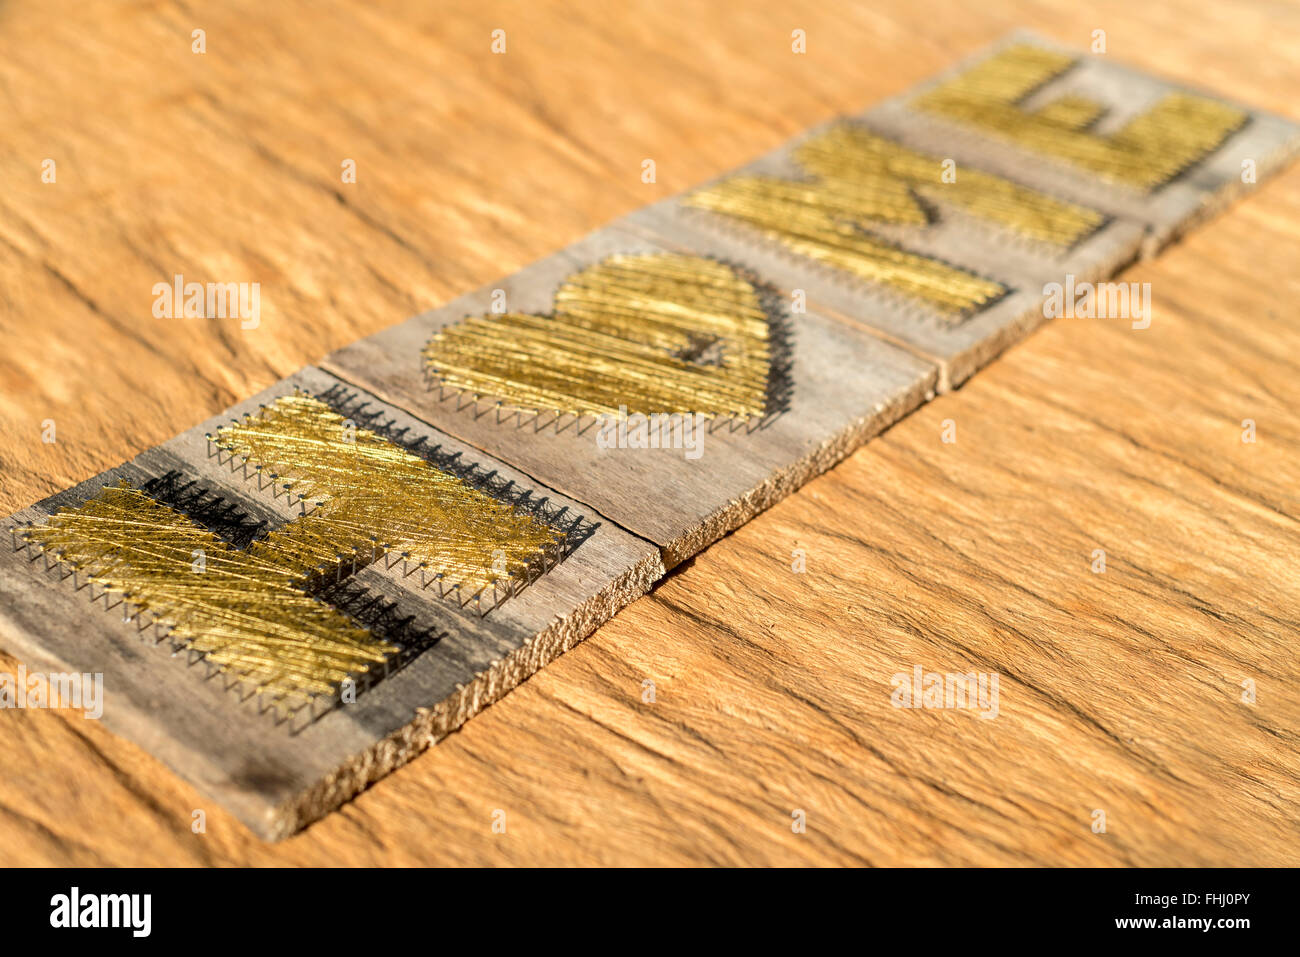 Home sweet home sign made of handmade wooden boards and golden string - Stock Image